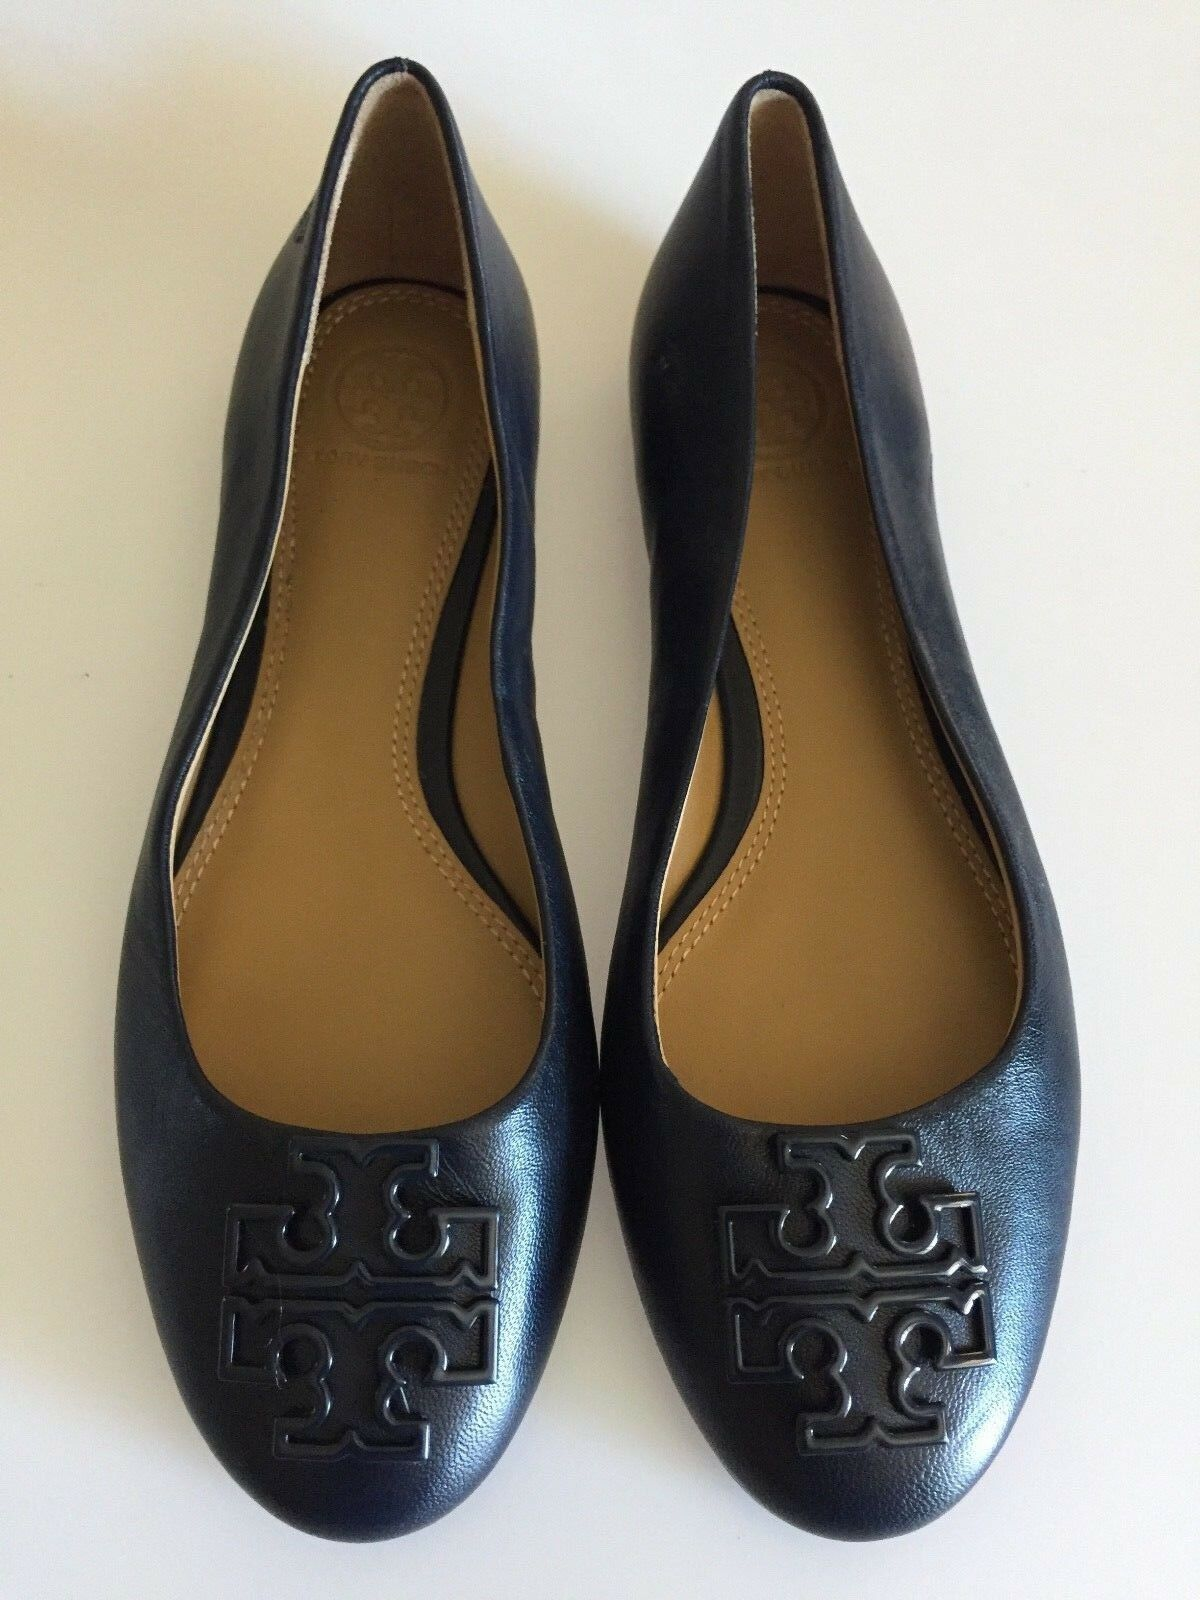 TORY BURCH Powder Coated Melinda Navy Leather Ballet Flats Shoes Size 6 M